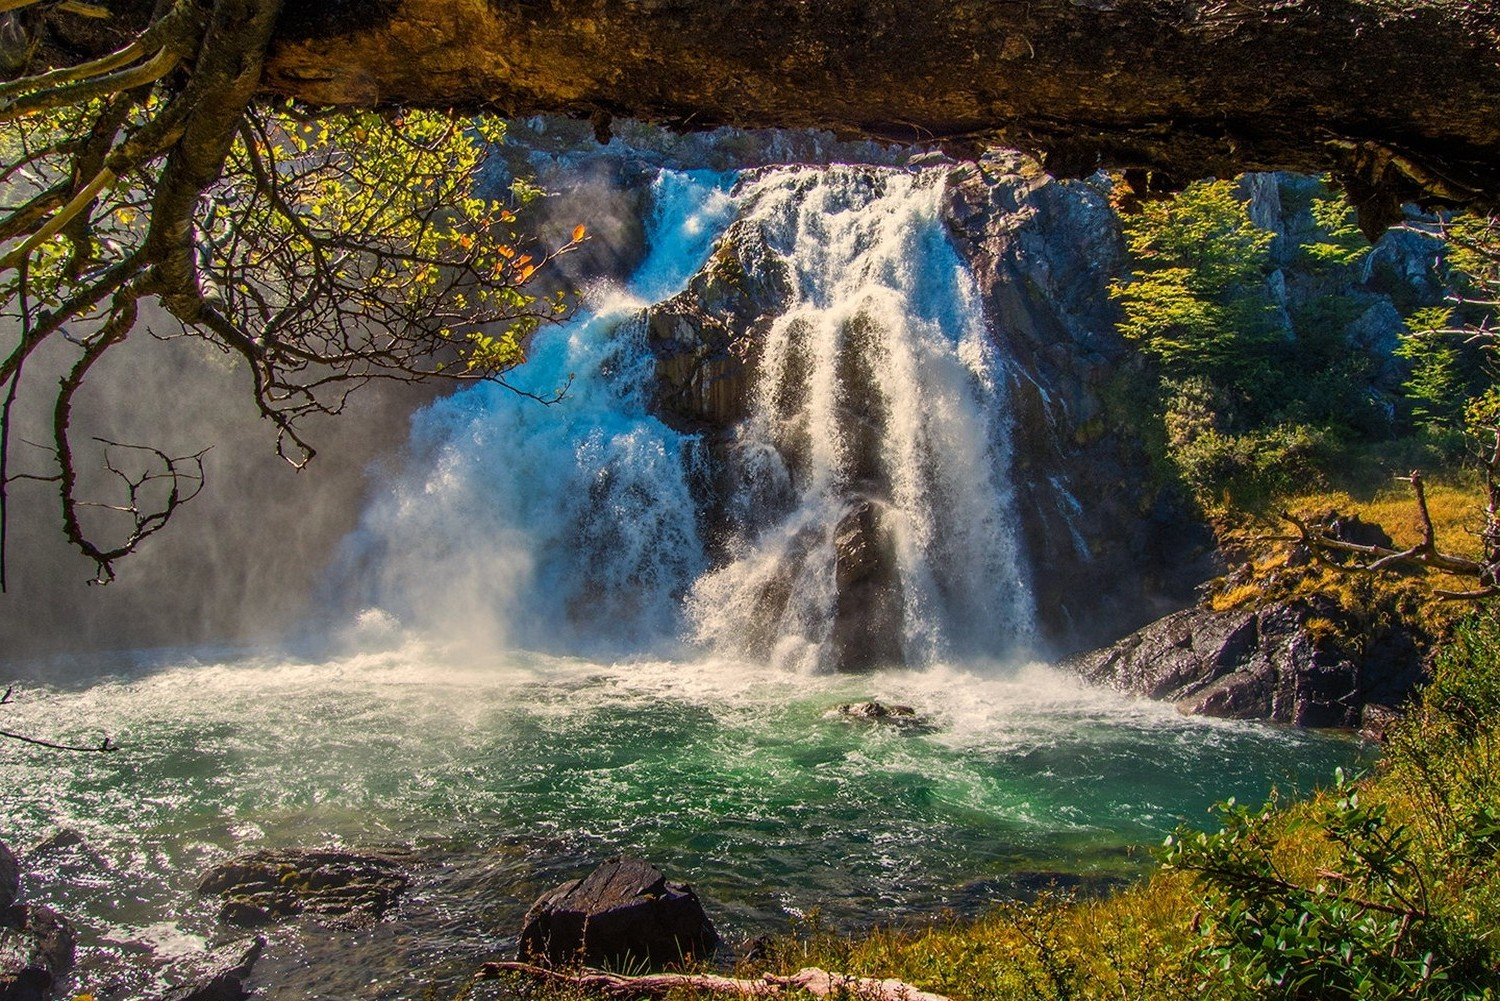 Forest In 3d Landscape Wallpaper Landscape Nature Waterfall Forest Grass River Pond